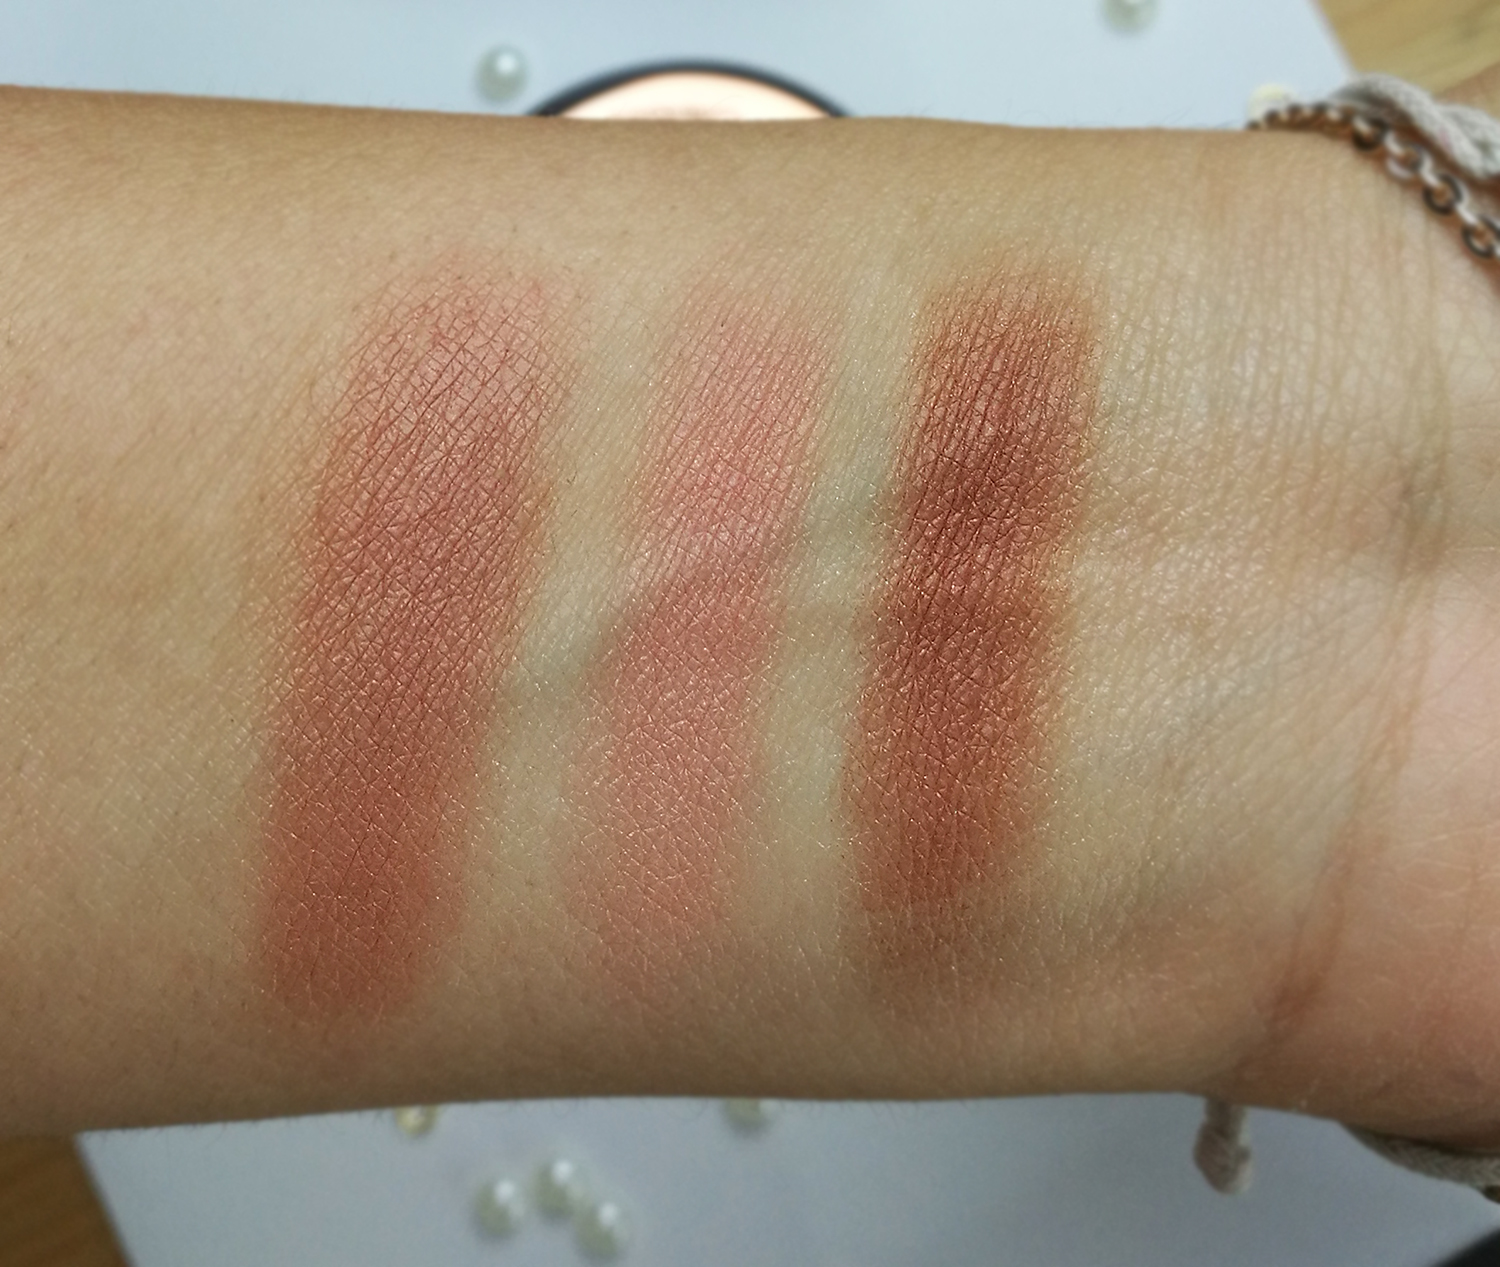 Charlotte Tilbury Cheek To Chick Blush, The Climax swatches